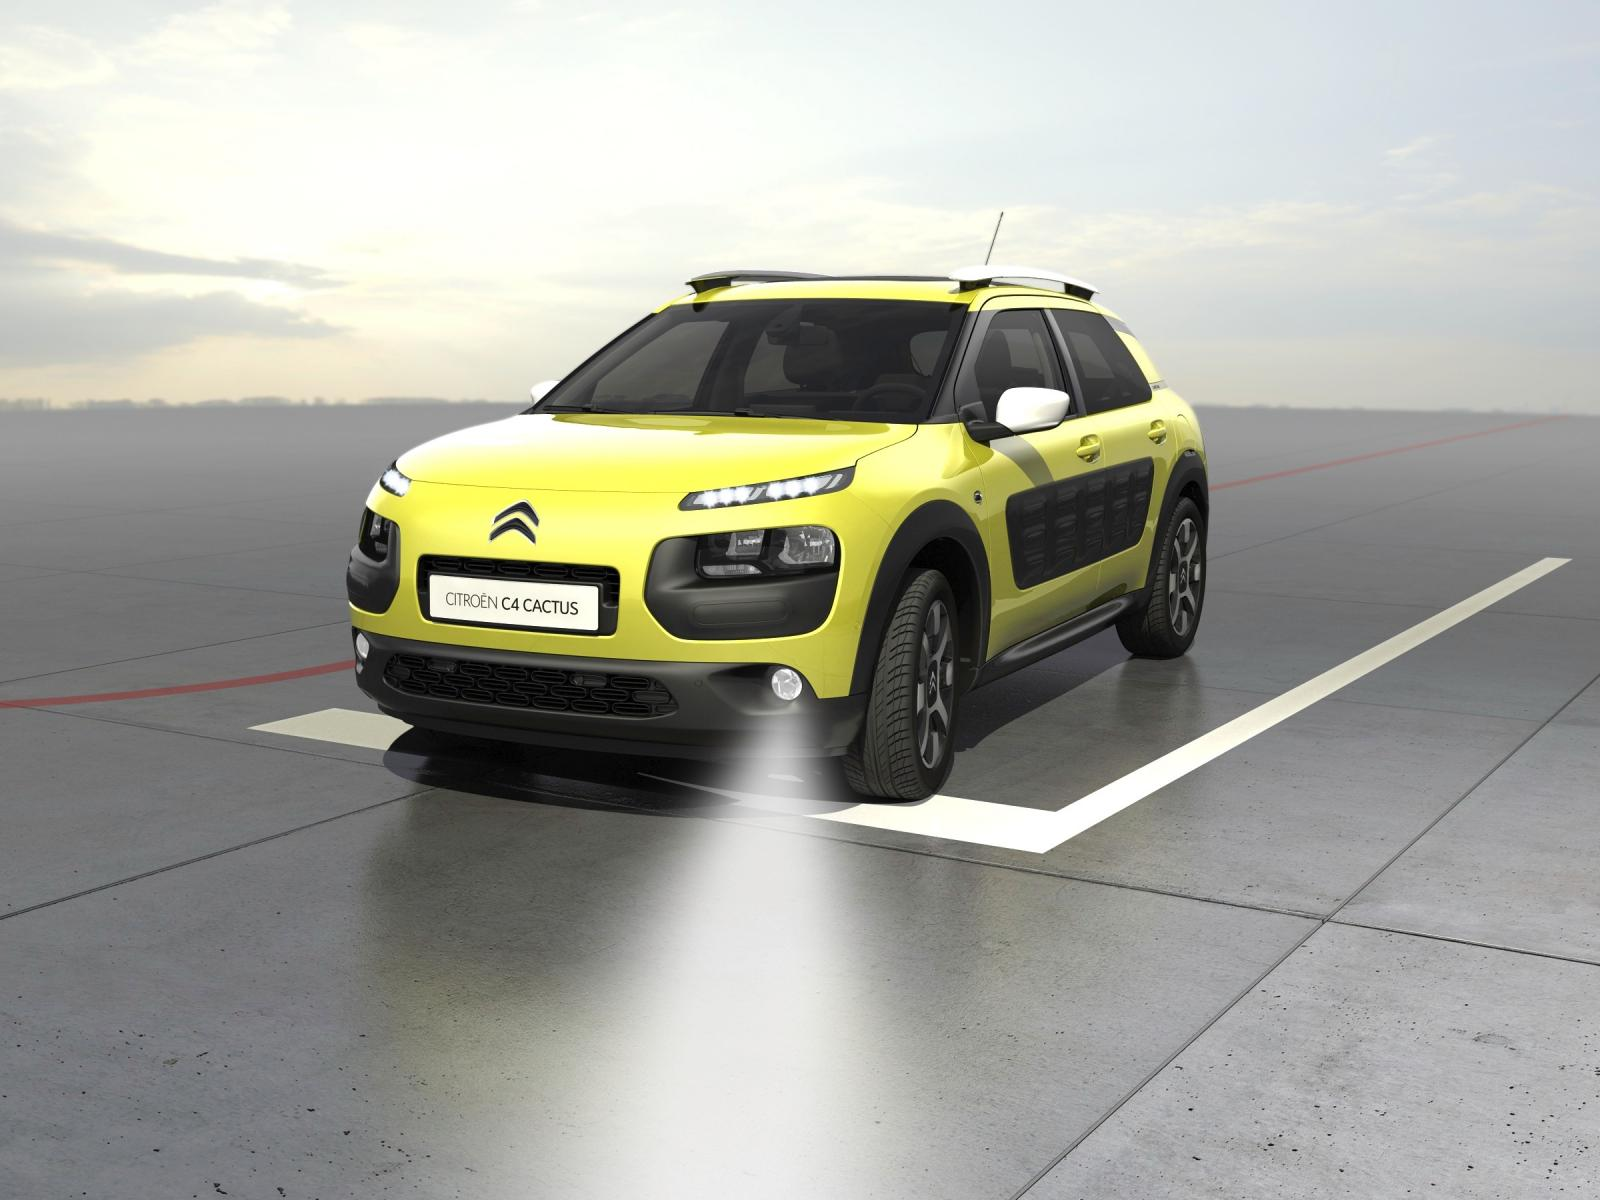 C4 Cactus 2014 éclairage statique d'intersection